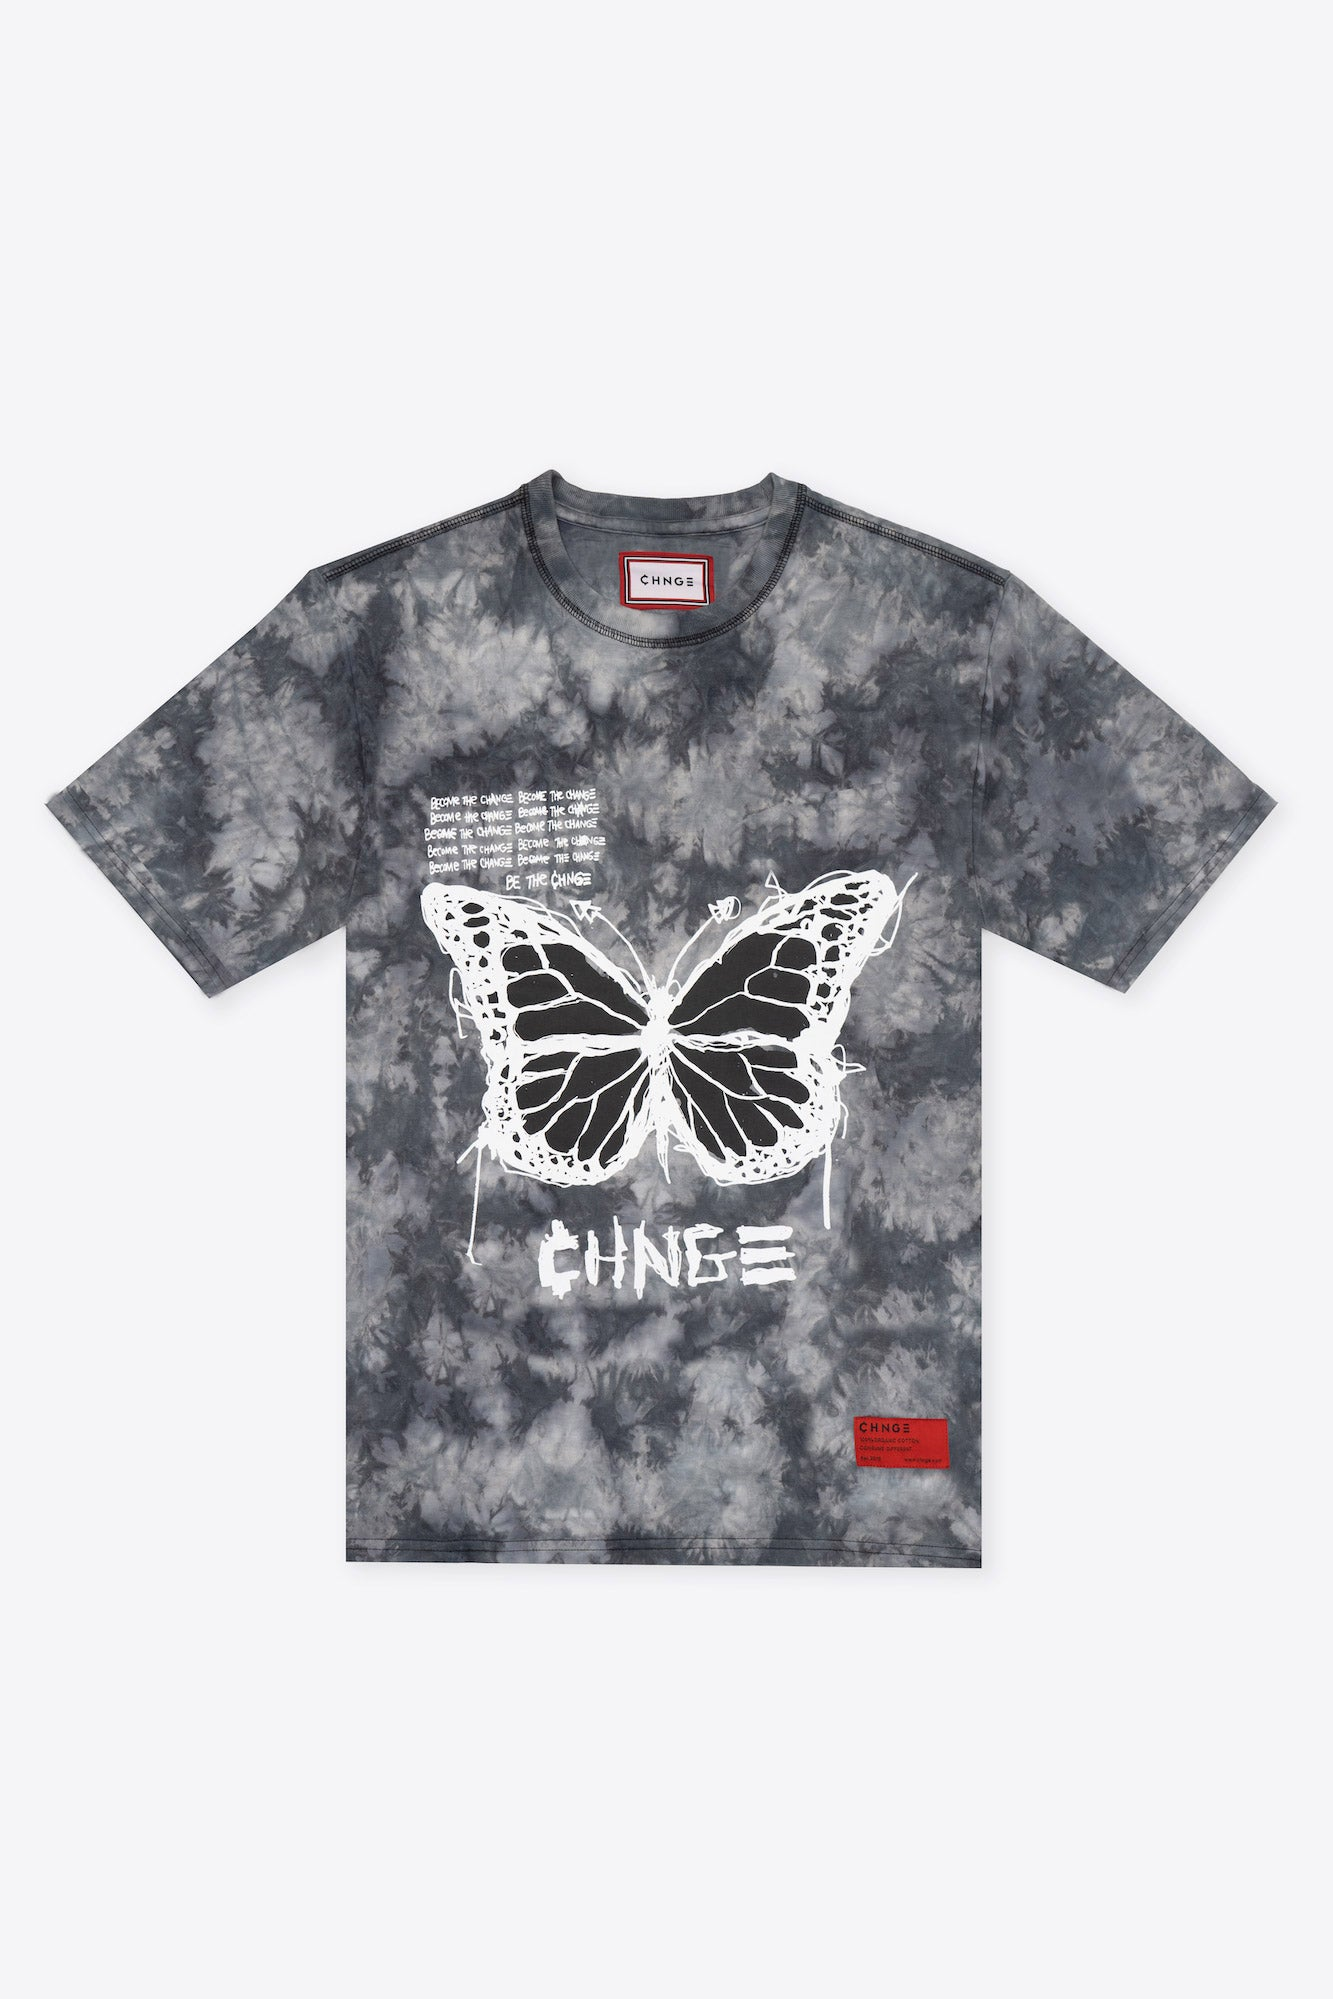 Tie Dye Become the CHNGE BF S/S T-Shirt (Black Marble)